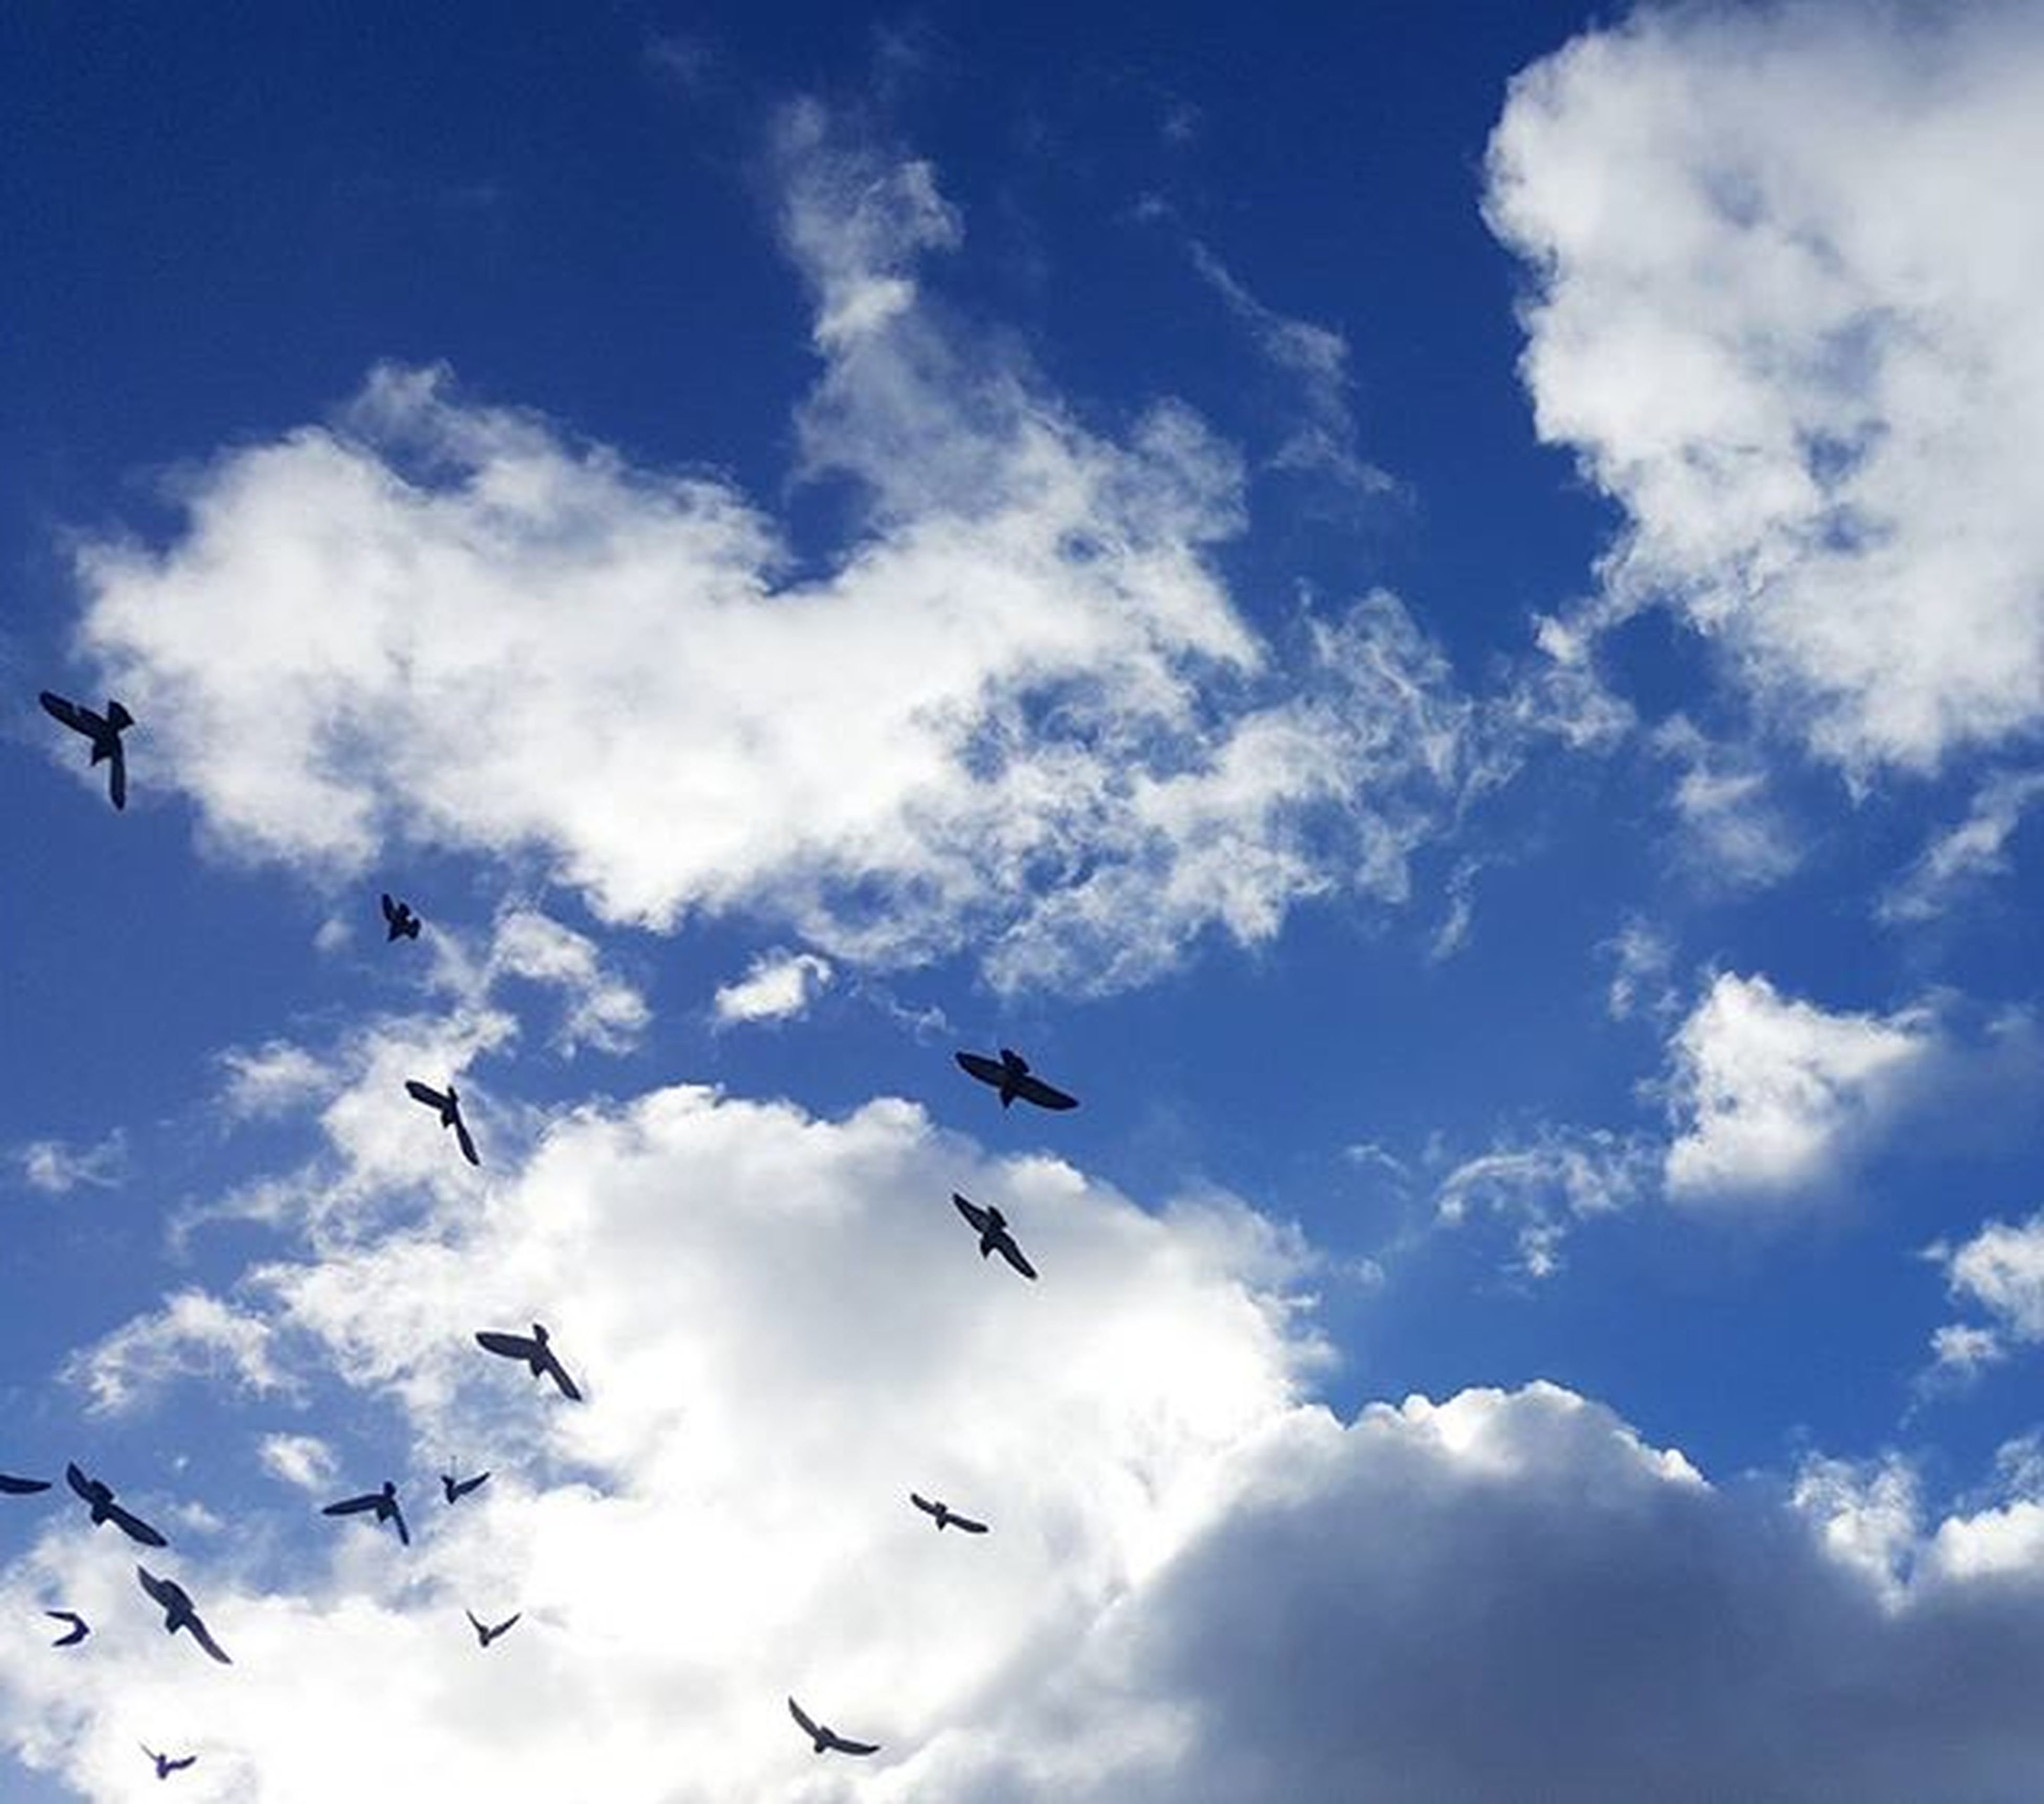 flying, low angle view, bird, sky, mid-air, animal themes, cloud - sky, animals in the wild, wildlife, blue, flock of birds, cloud, nature, cloudy, beauty in nature, freedom, spread wings, day, outdoors